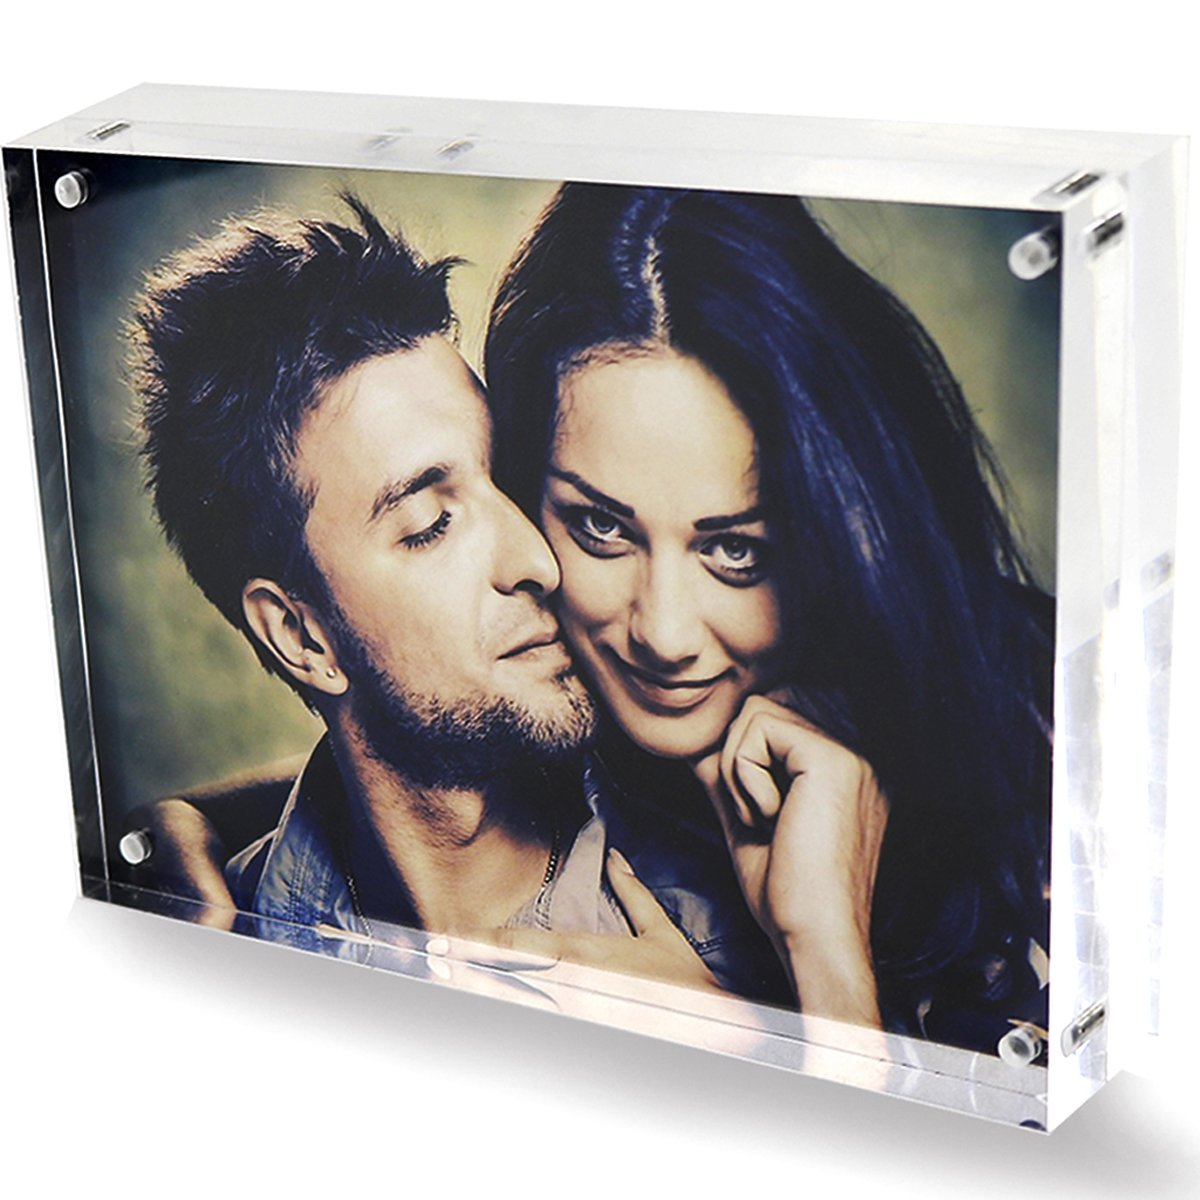 2018 Acrylic Frames,Clear 5x7 Double Sided Acrylic Picture Frame, Desktop Acrylic Magnetic Photo Frames,Picture Display Stand Holder for Family Love Baby First Day 5 by 7, 20% Extra Thick Blocks DYCacrlic